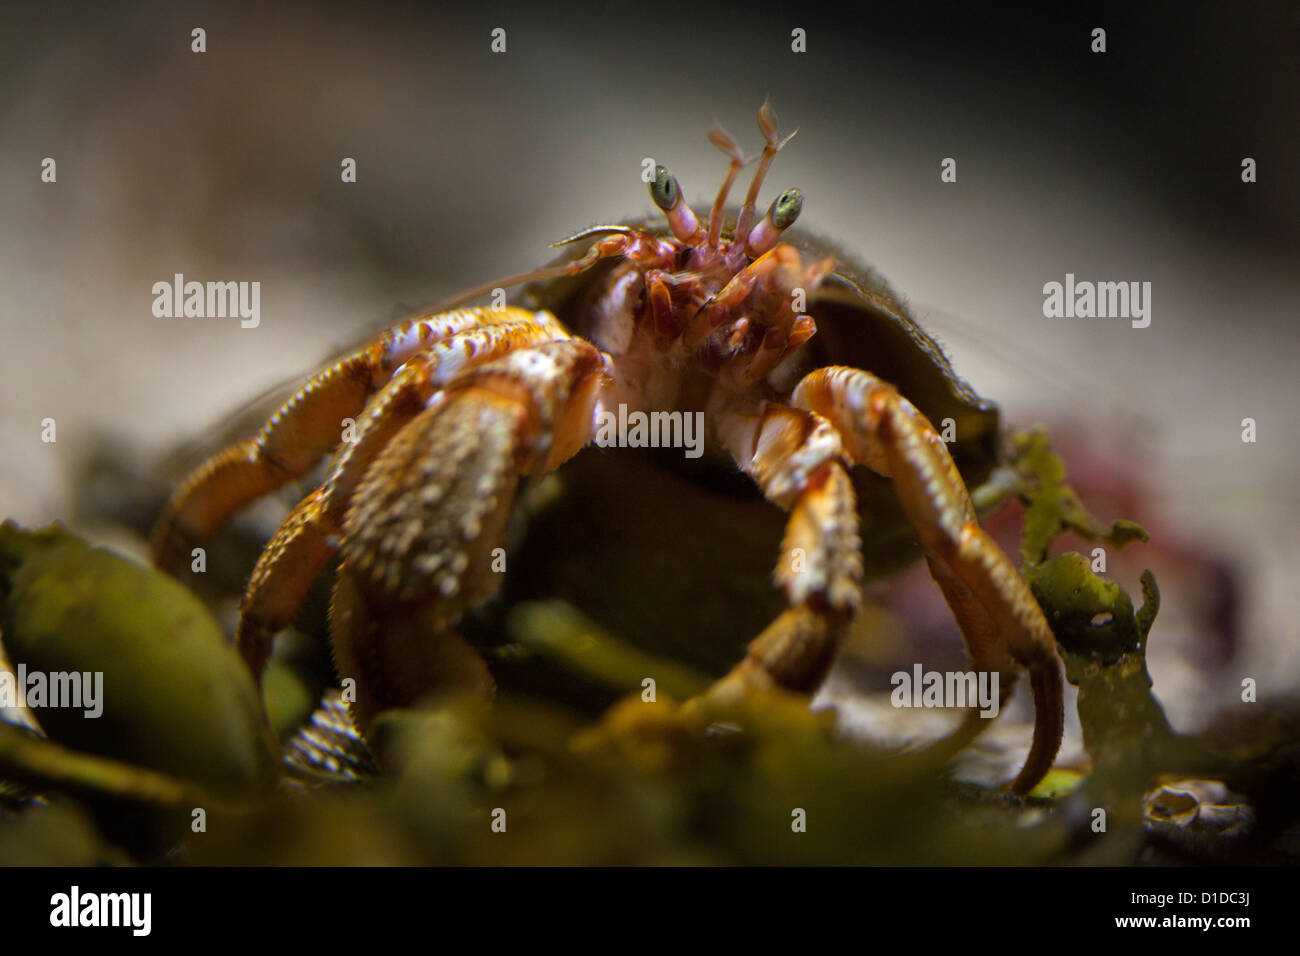 Hermit crab in Bergen Aquarium. - Stock Image